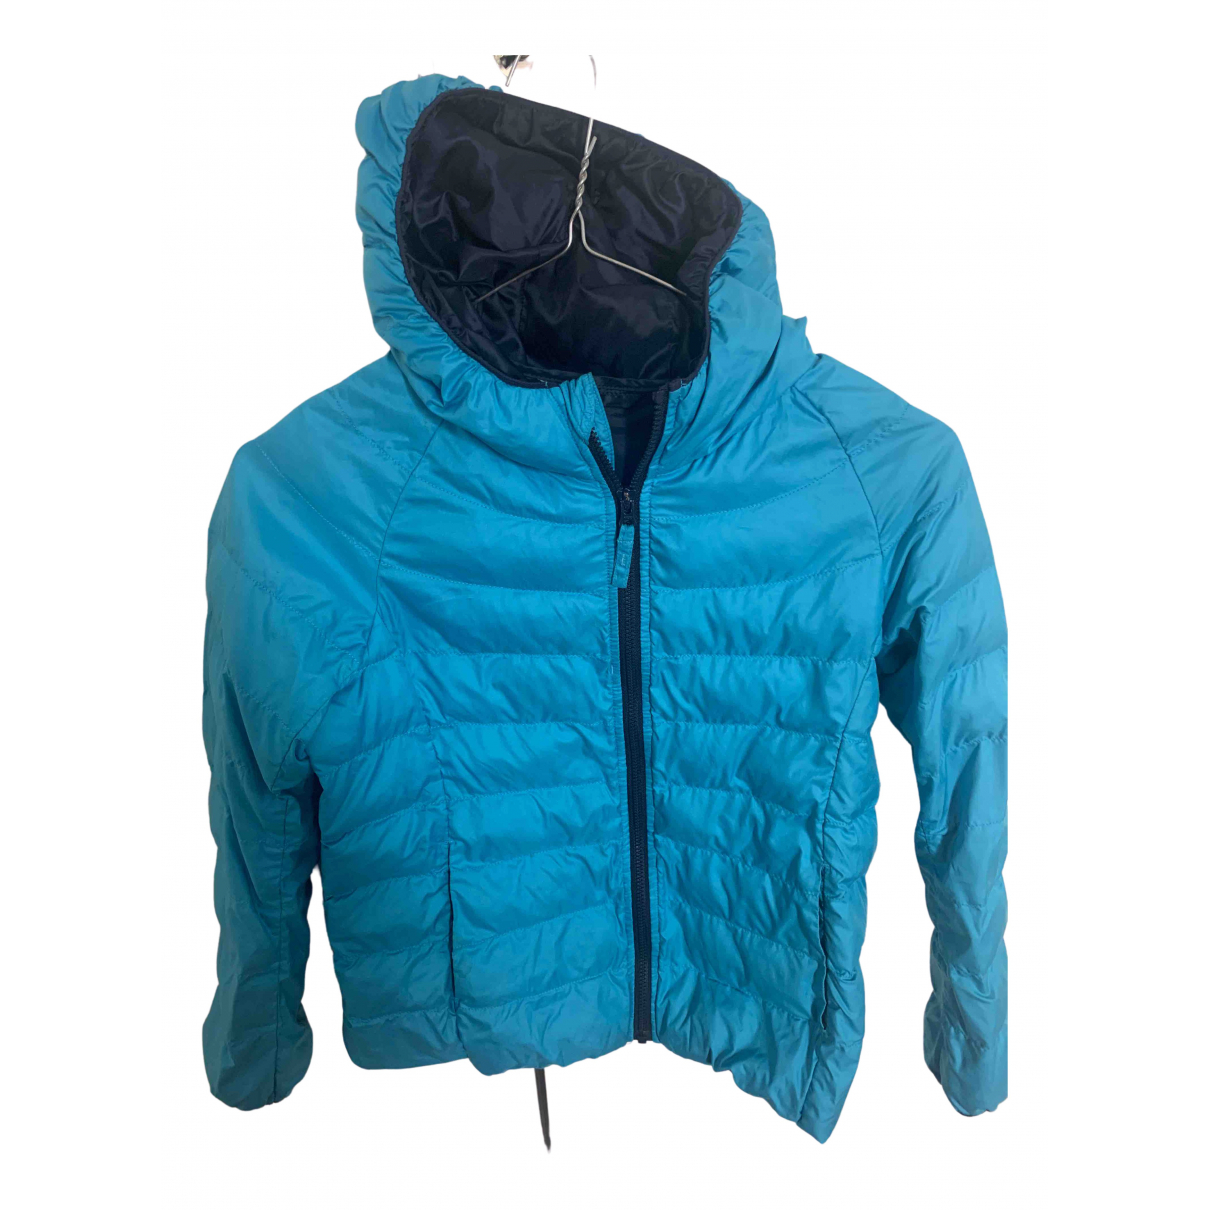 Uniqlo N Turquoise jacket & coat for Kids 8 years - up to 128cm FR